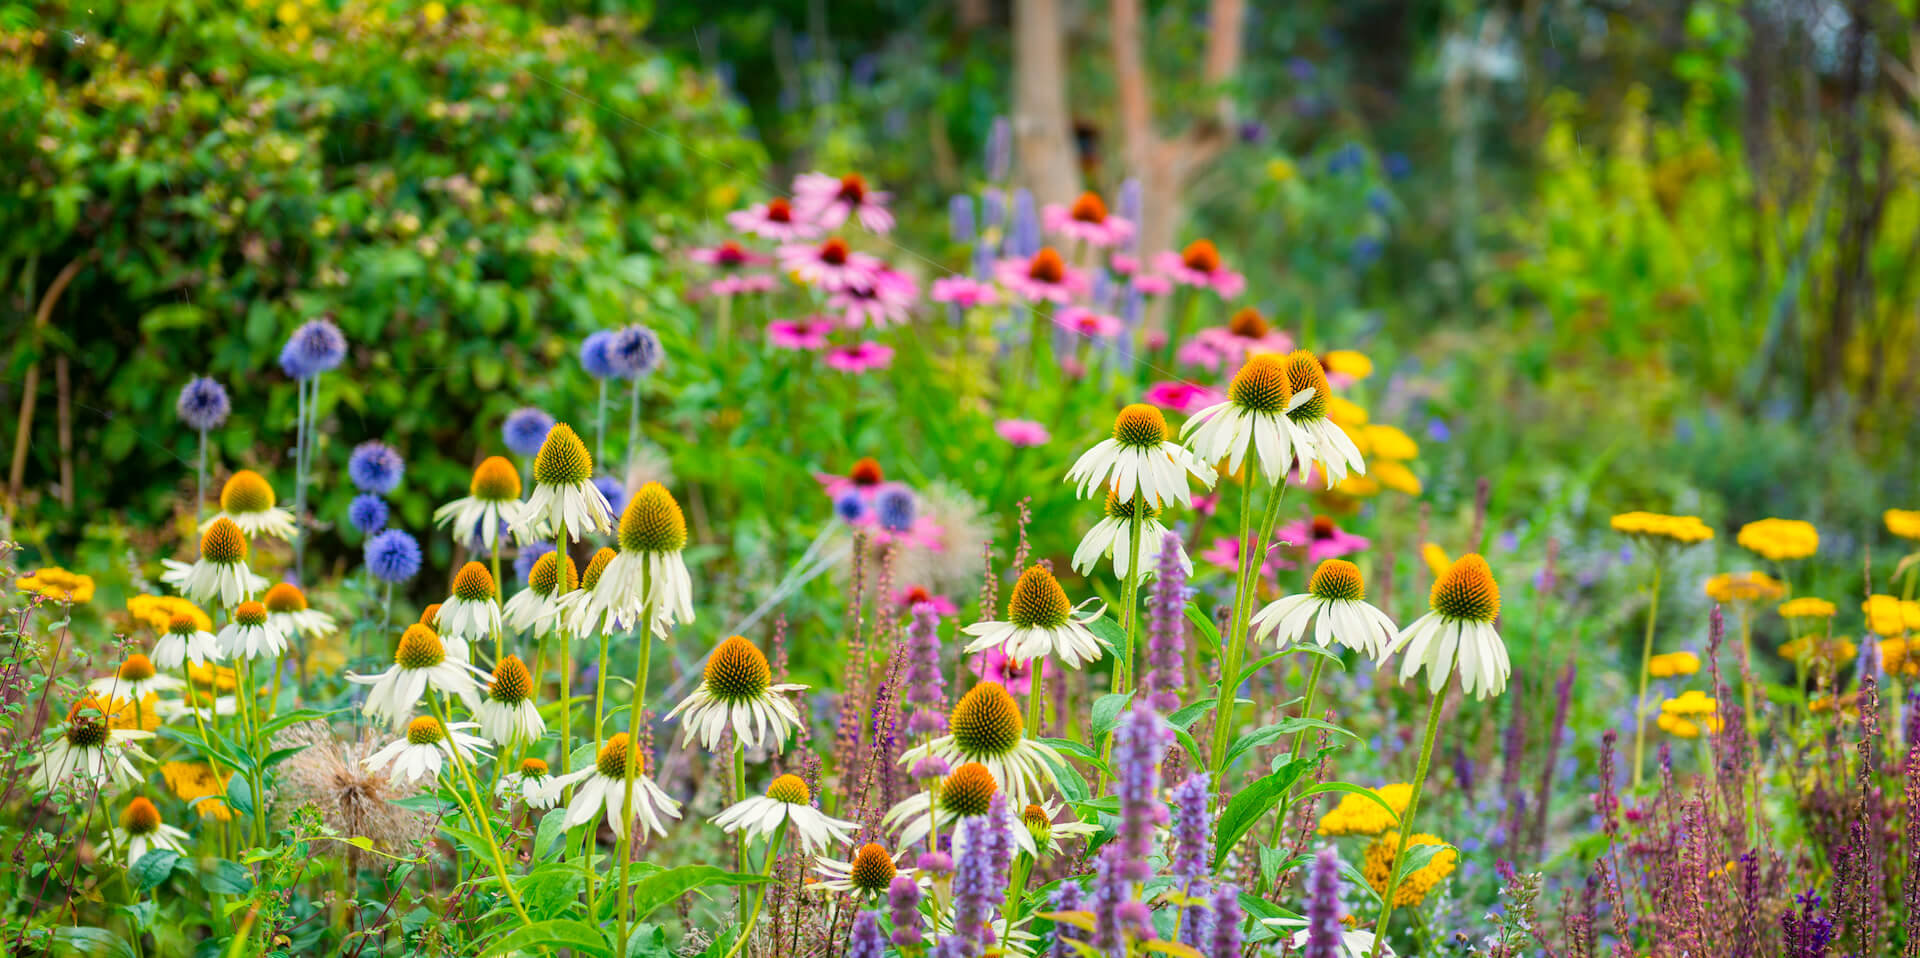 Colorful flowerbeds in a beautiful garden